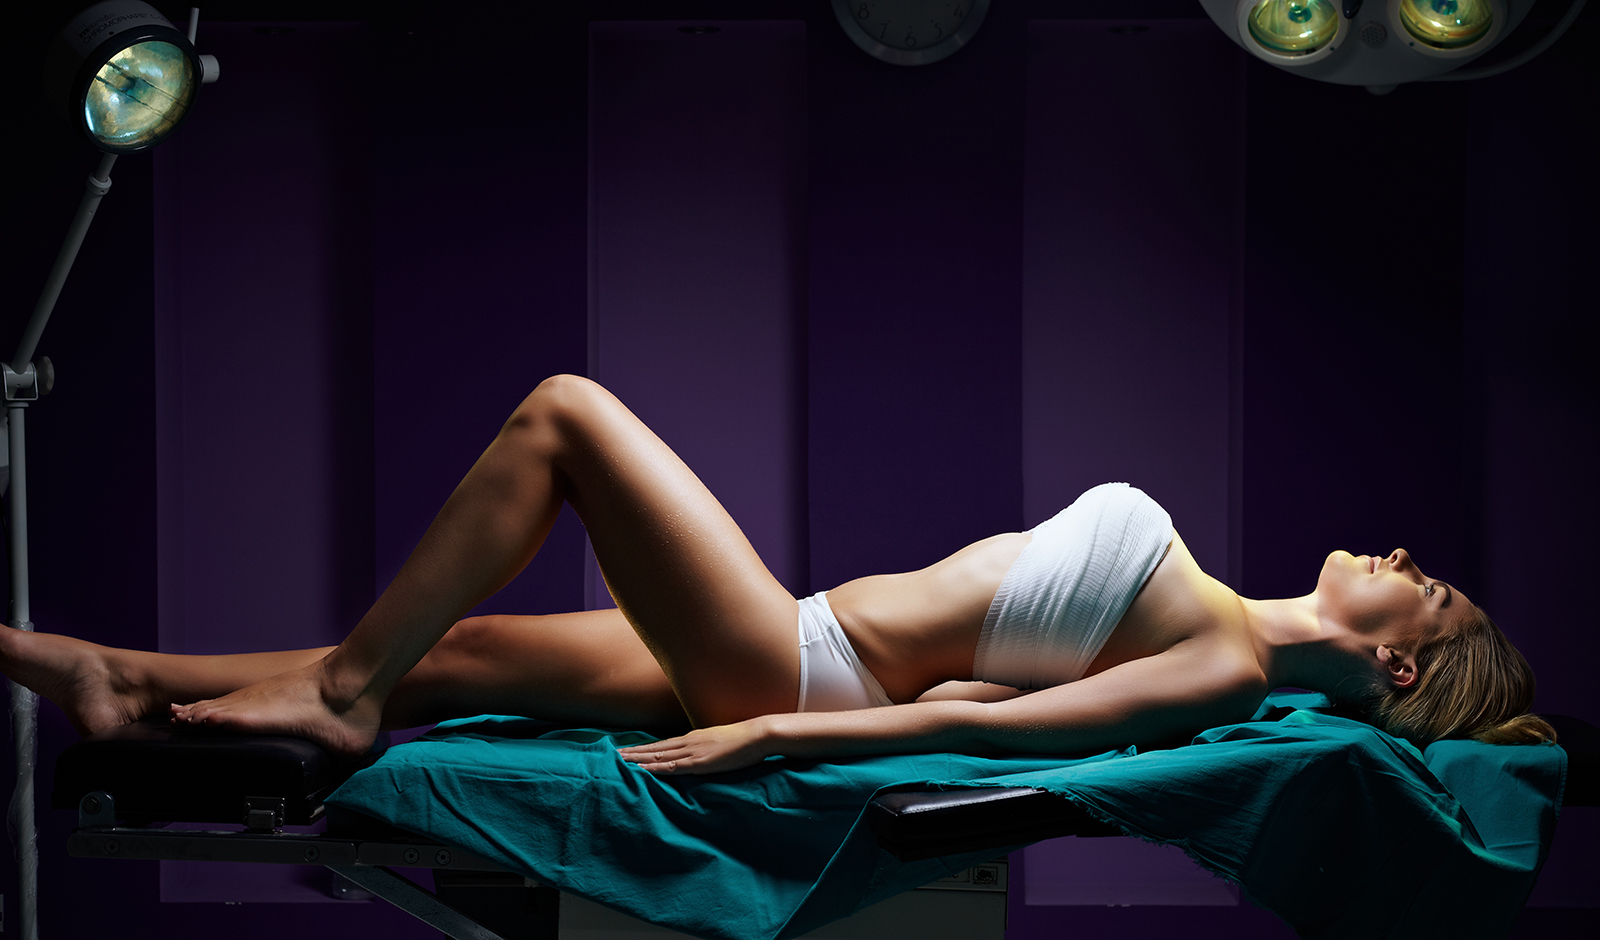 the-most-effective-plastic-surgery-procedures-main-image-woman-on-table (1)